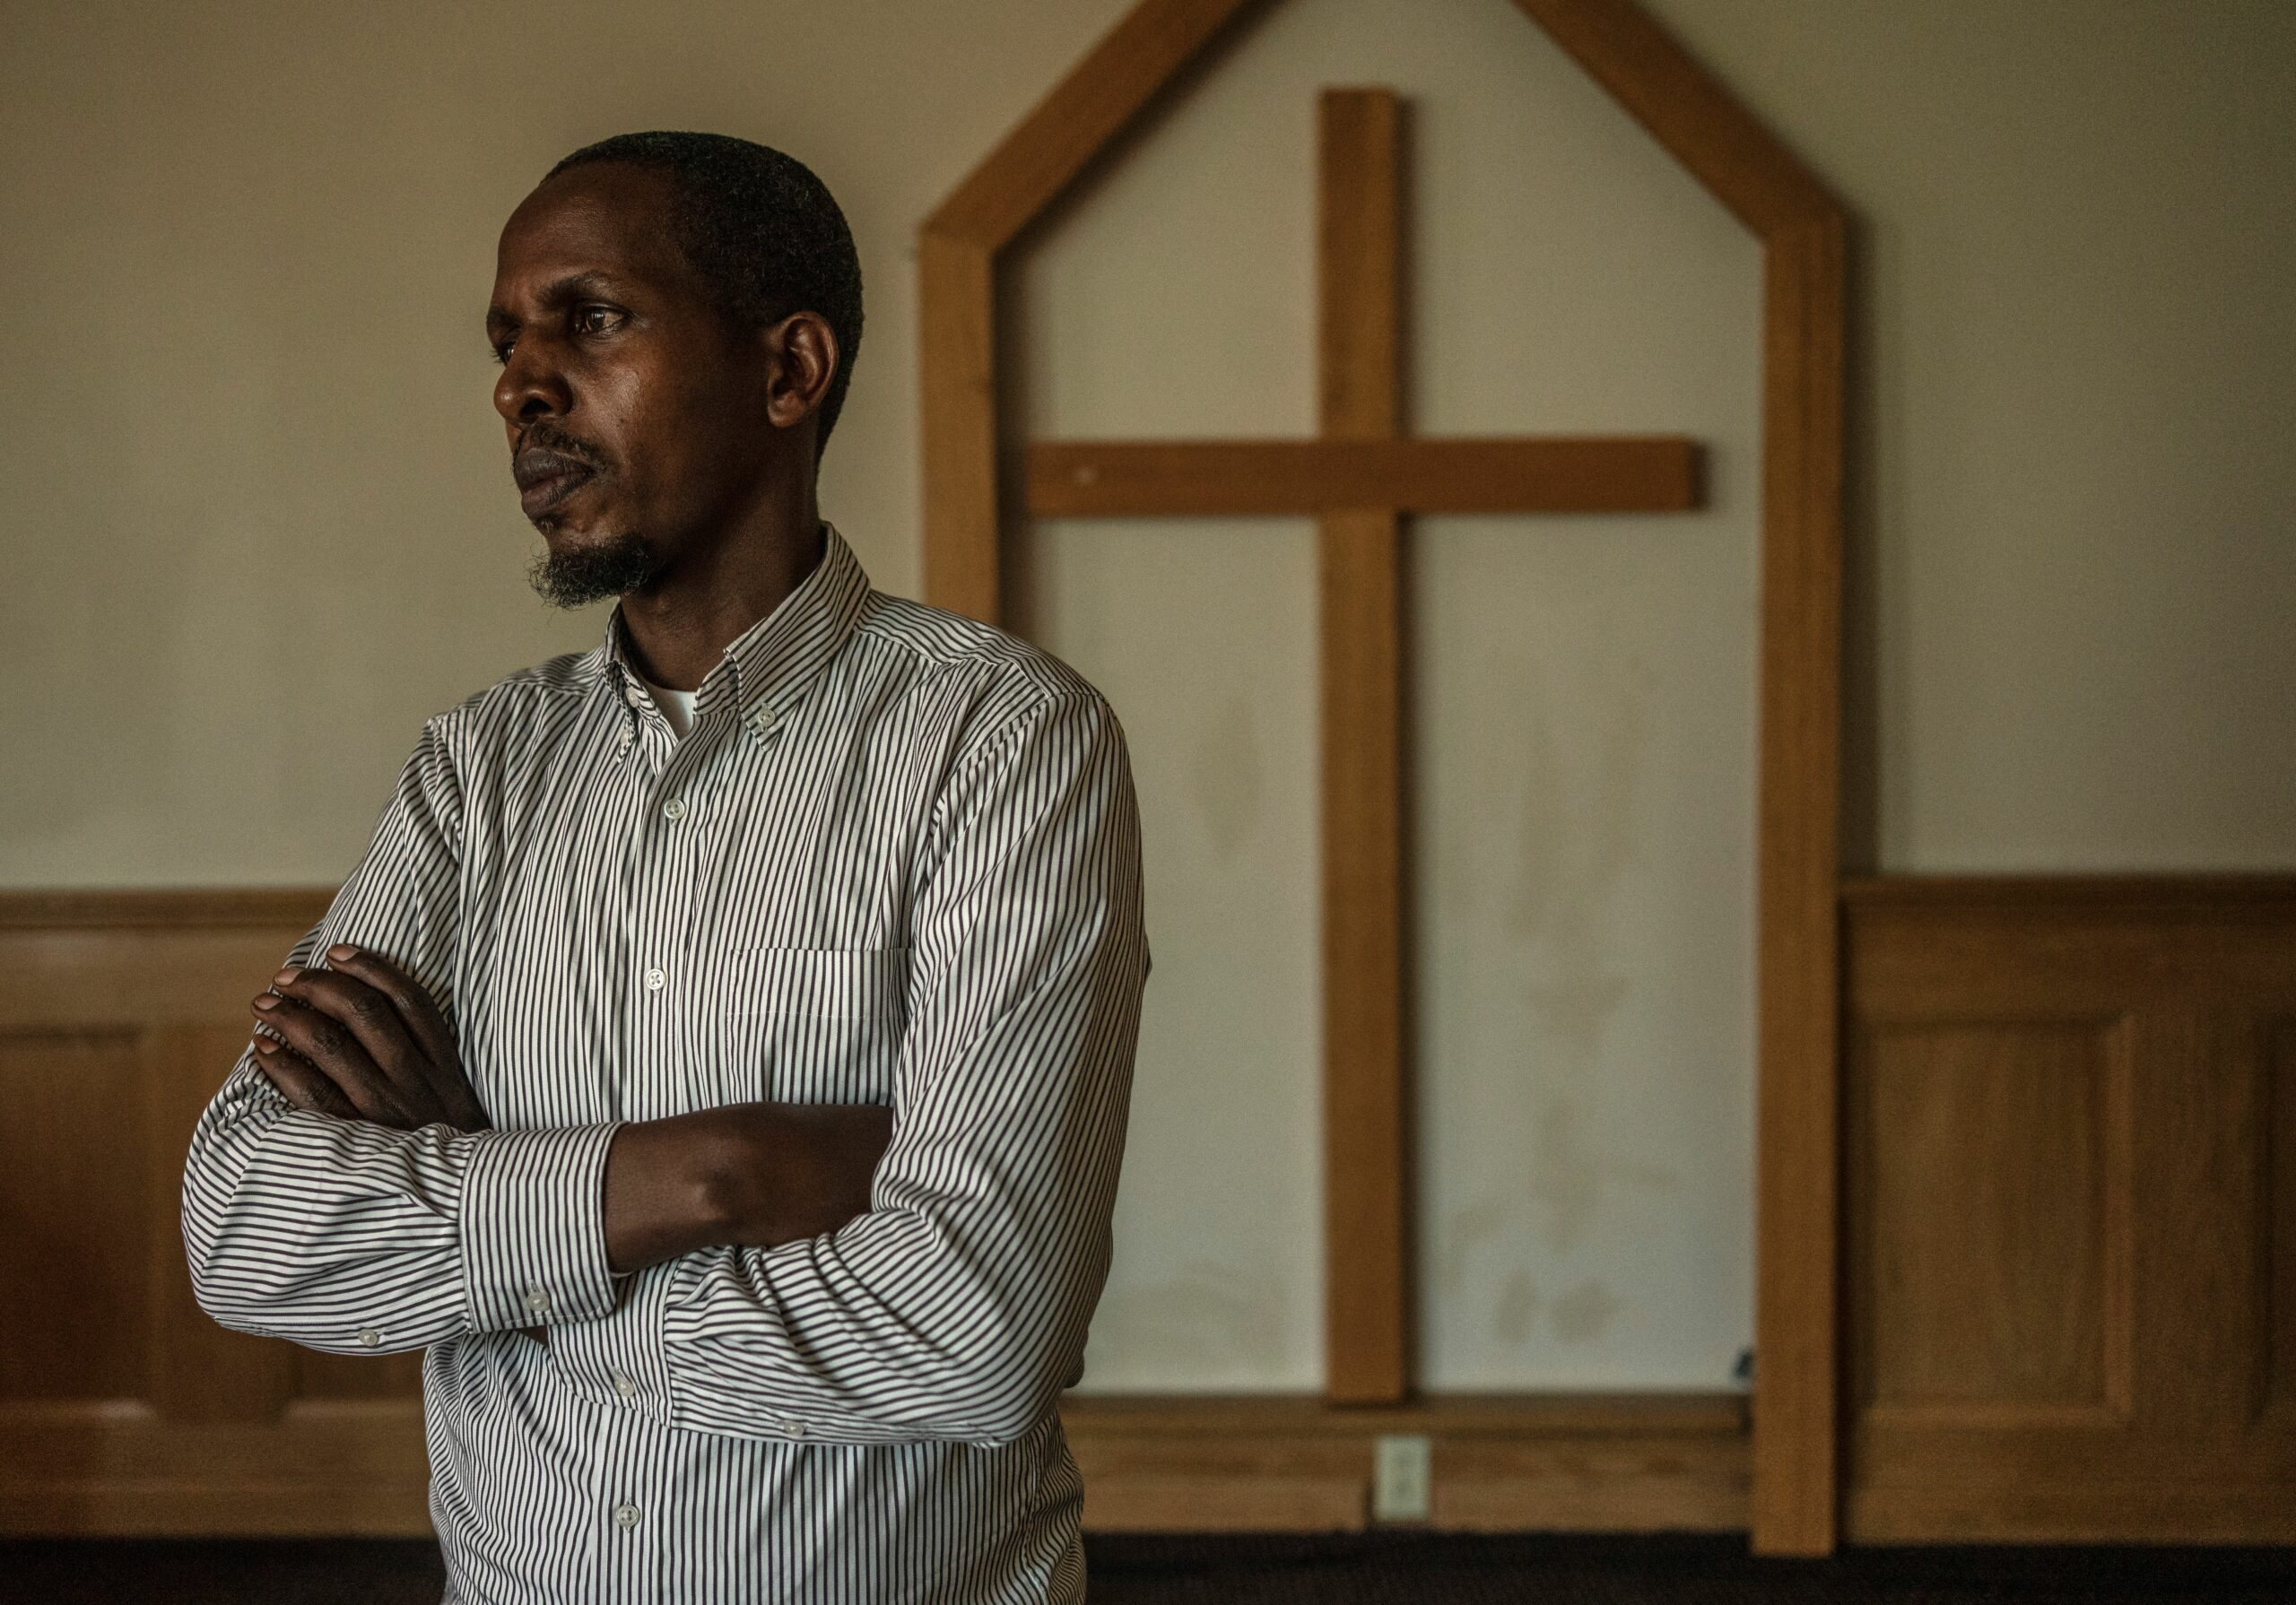 Alex Mutabazi and his family came to Tennessee in 2016 to escape years of strife in the Democratic Republican of Congo. He has founded two Tennessee churches.(Photo: John Partipilo)